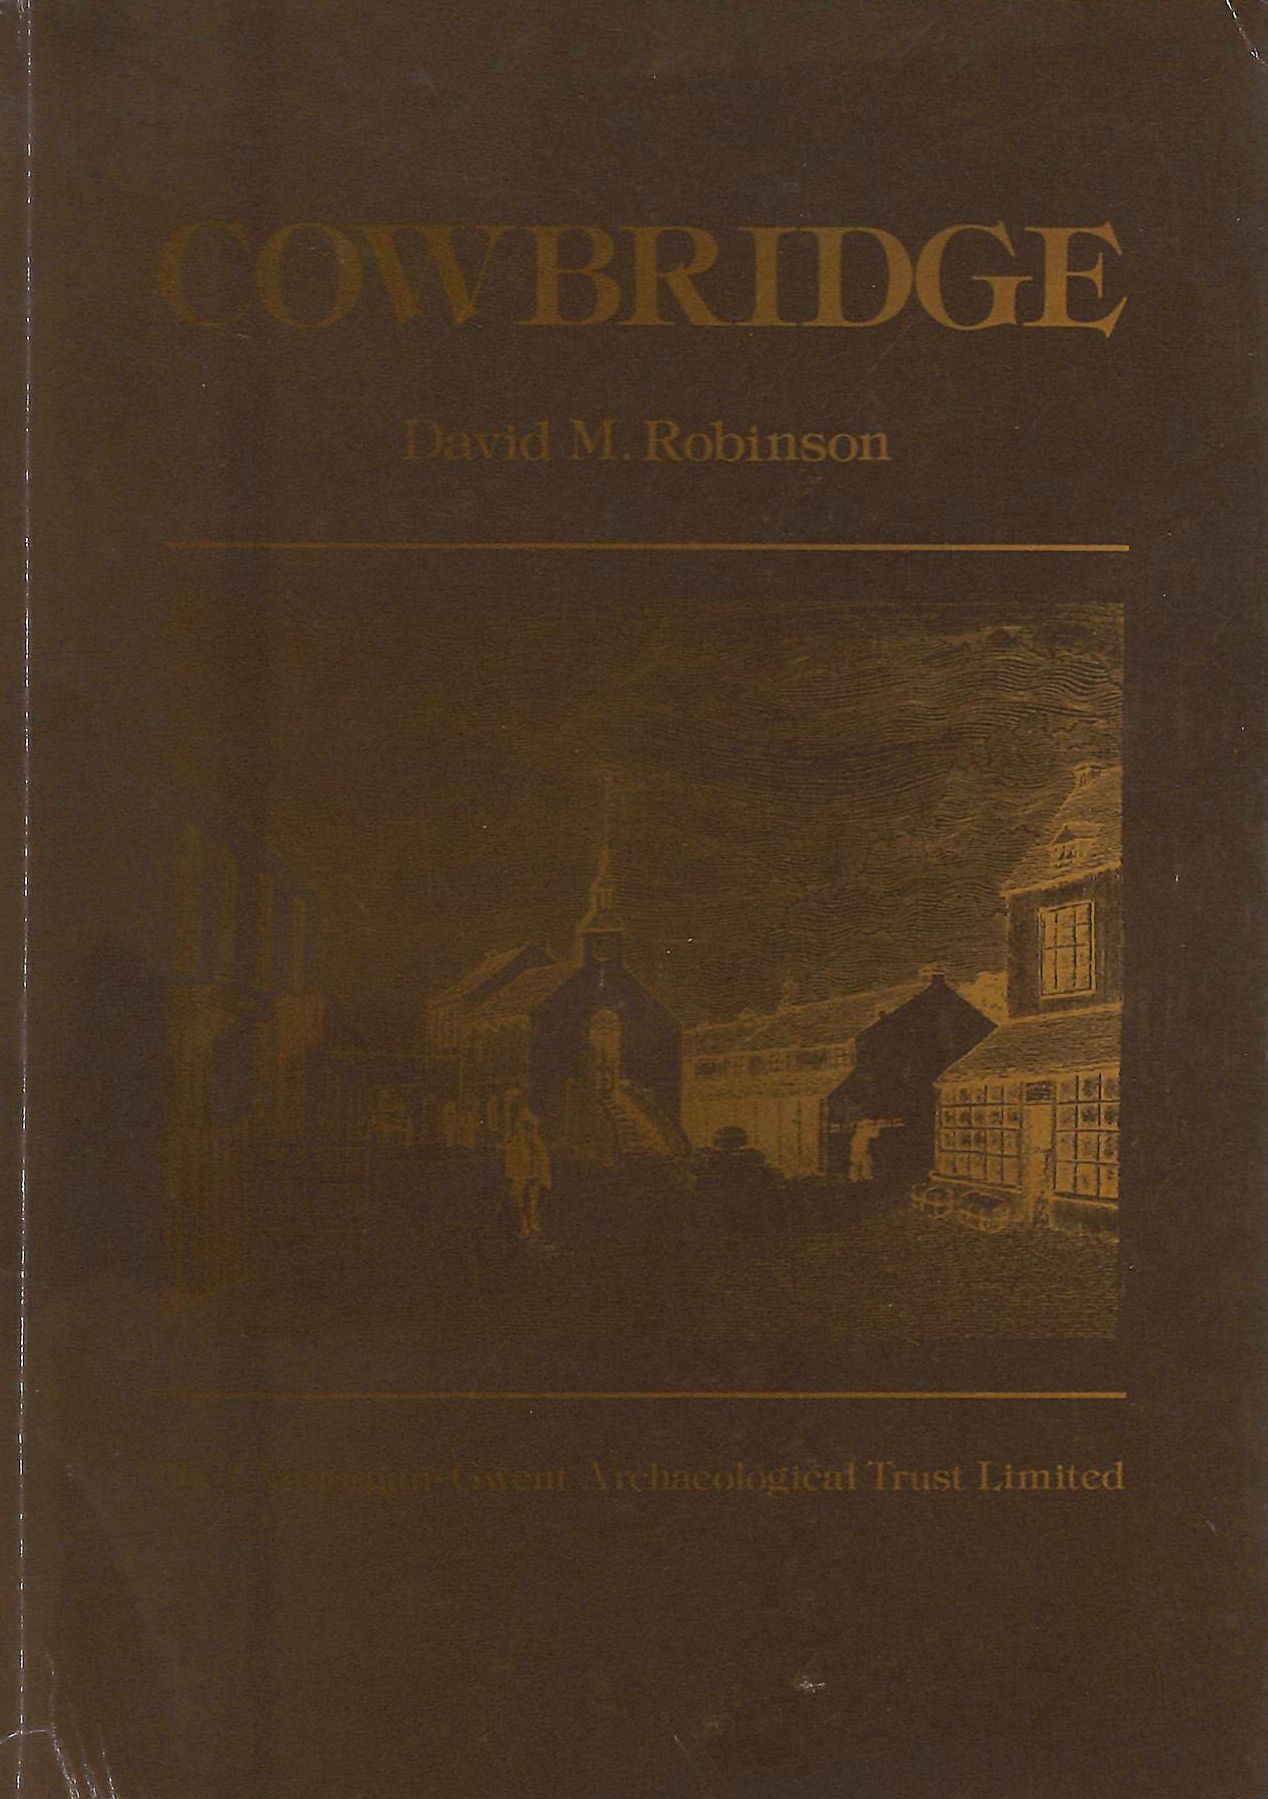 Image for Cowbridge: The Archaeology and Topography of a Small Market Town in the Vale of Glamorgan (Town survey)